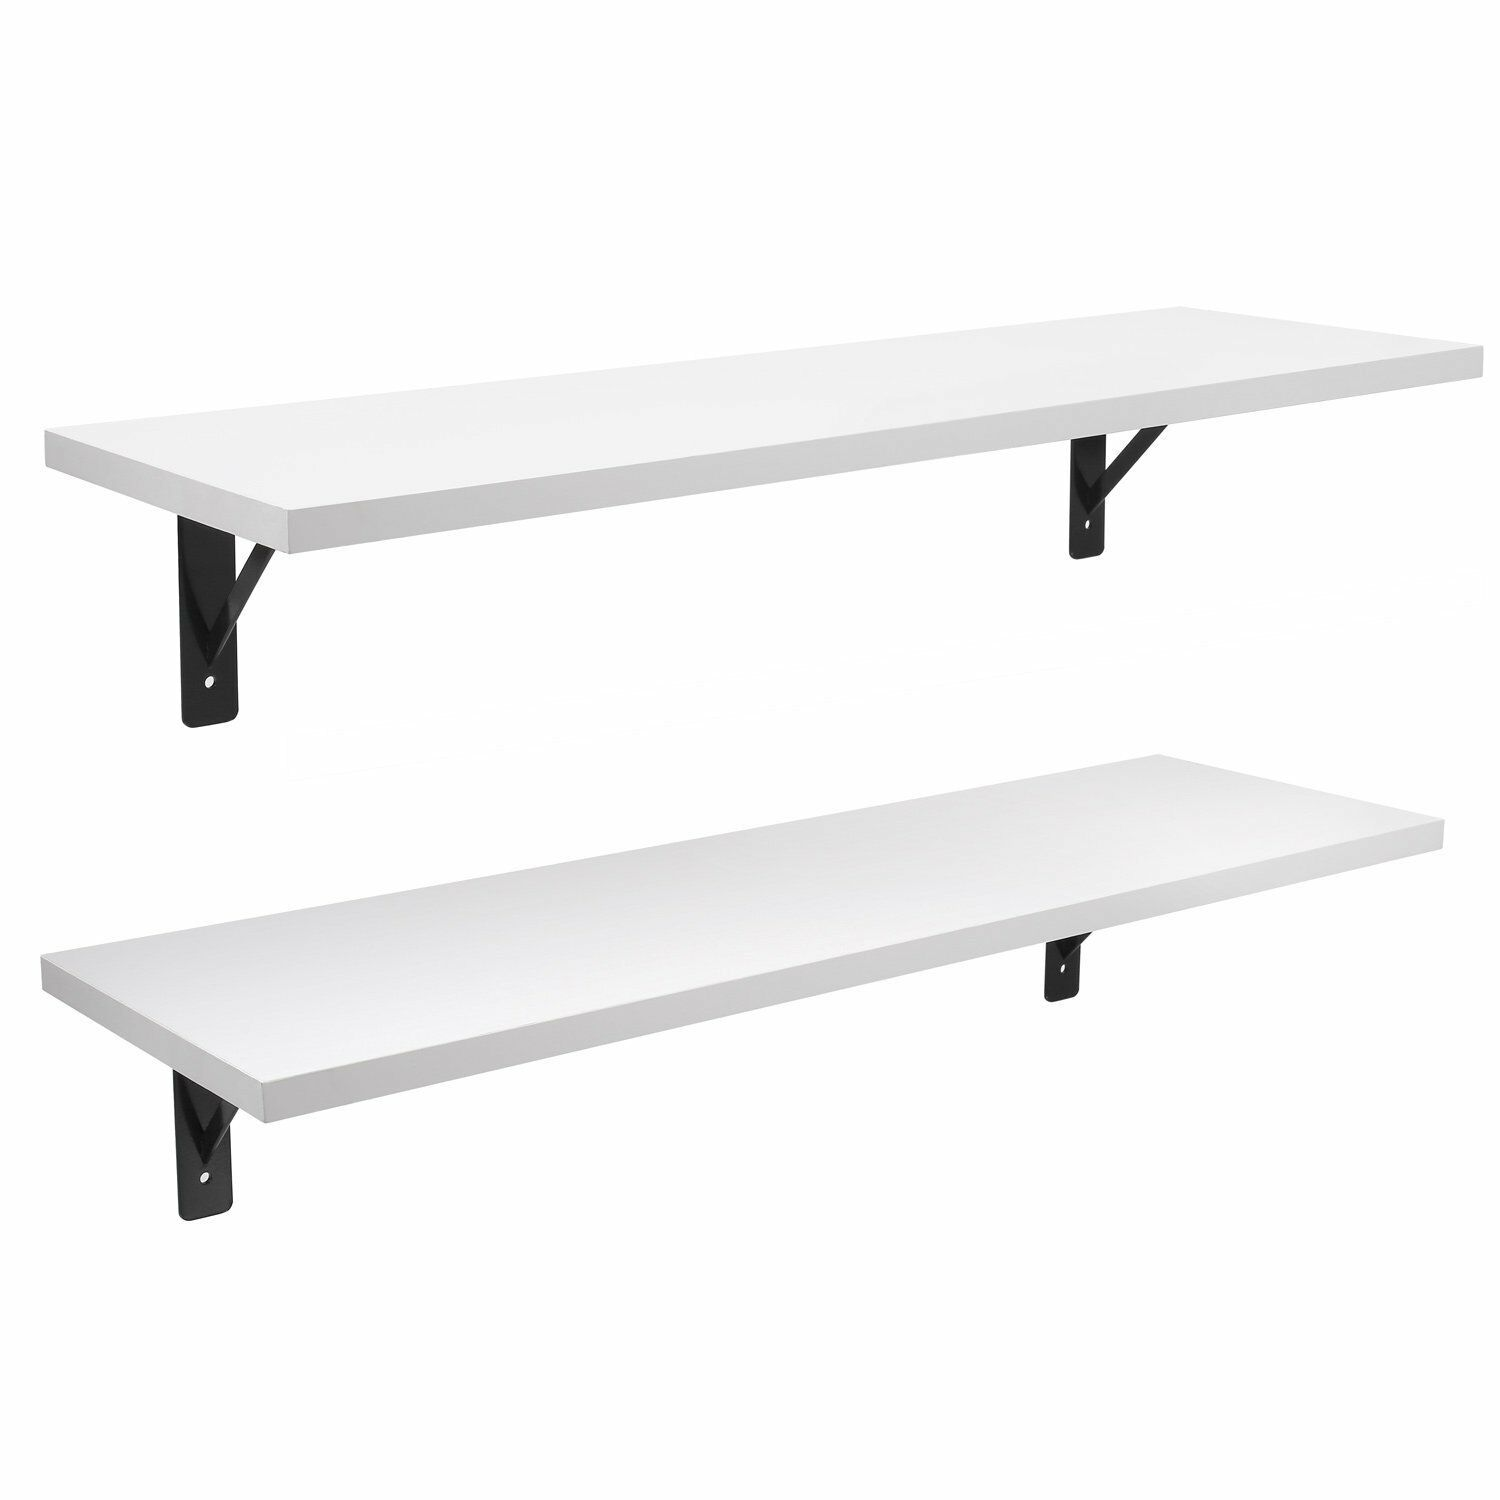 2 Display Ledge Shelf Floating Shelves Wall Mounted with Bra